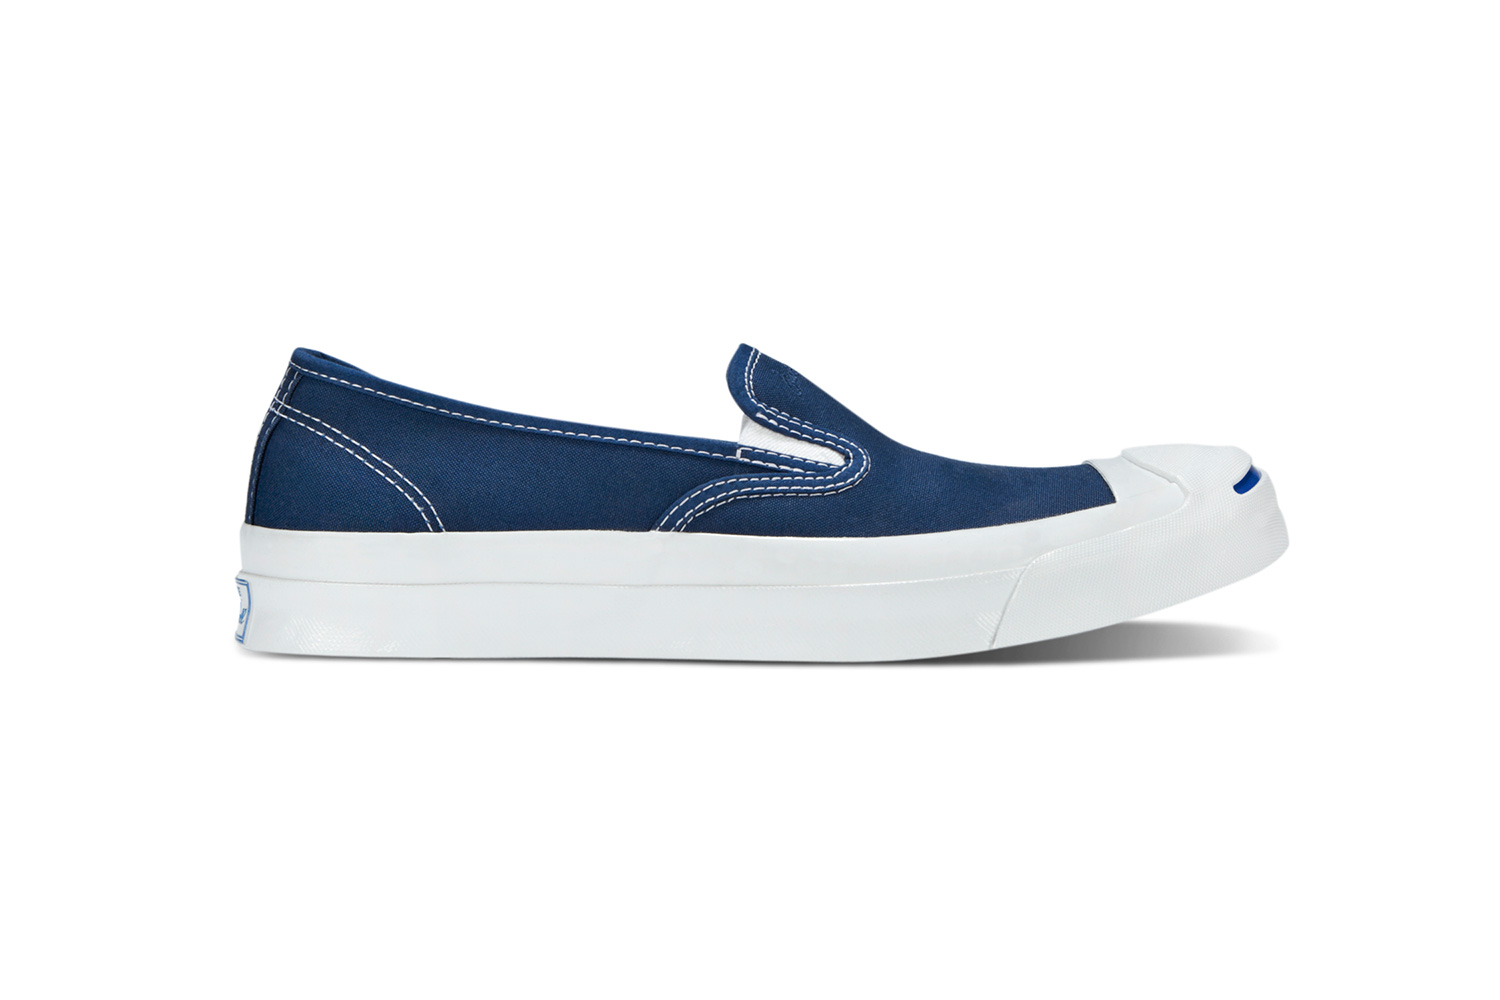 Converse Jack Purcell Signature Slip Ons